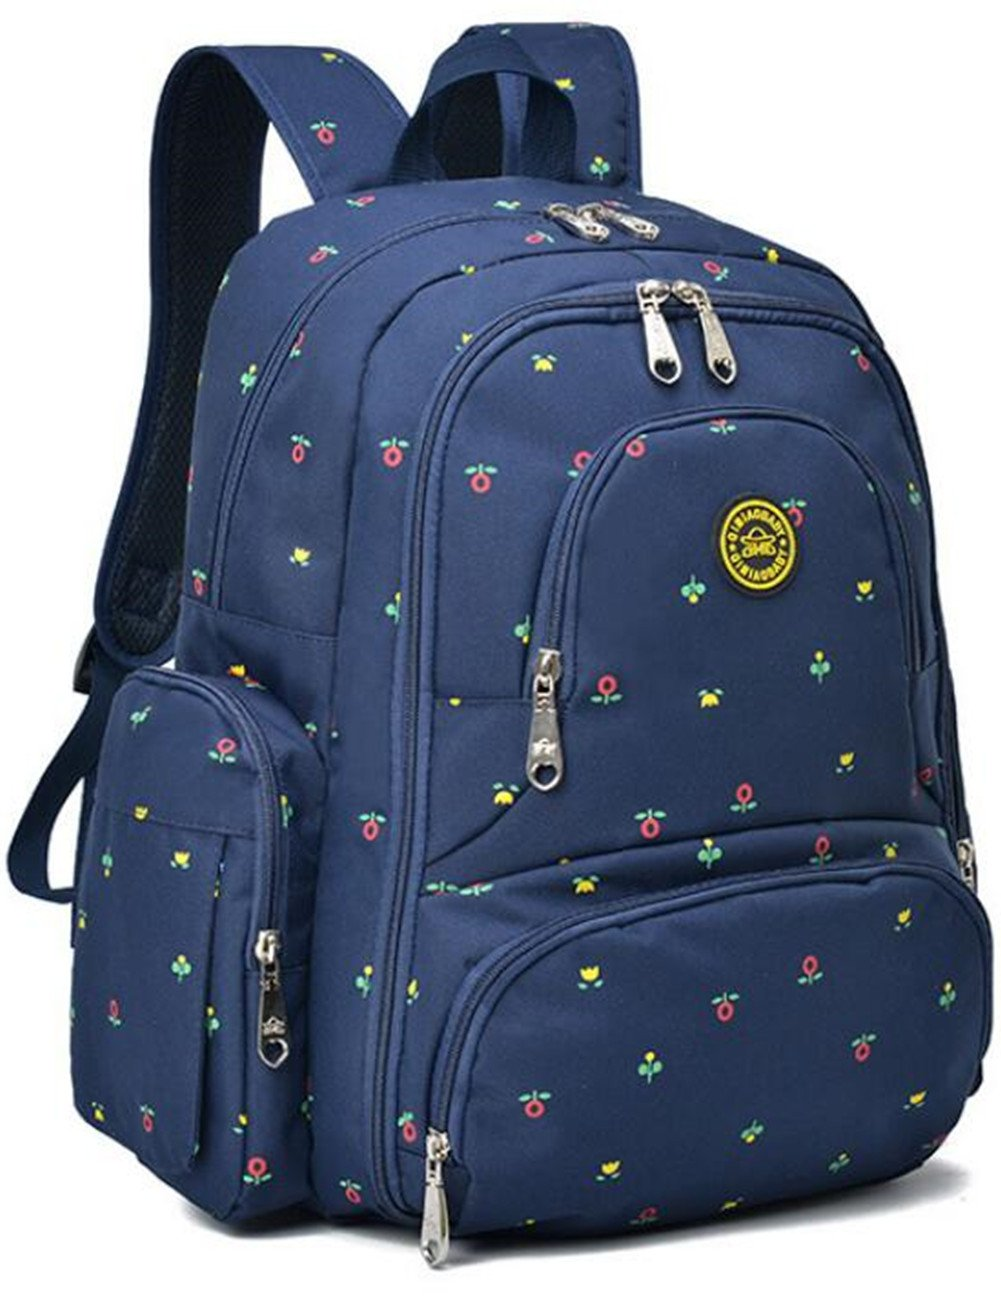 Aidonger Baby Diaper Backpack Waterproof Nylon with Clips Large Capacity Fit Stroller (Darkblue&Flower)